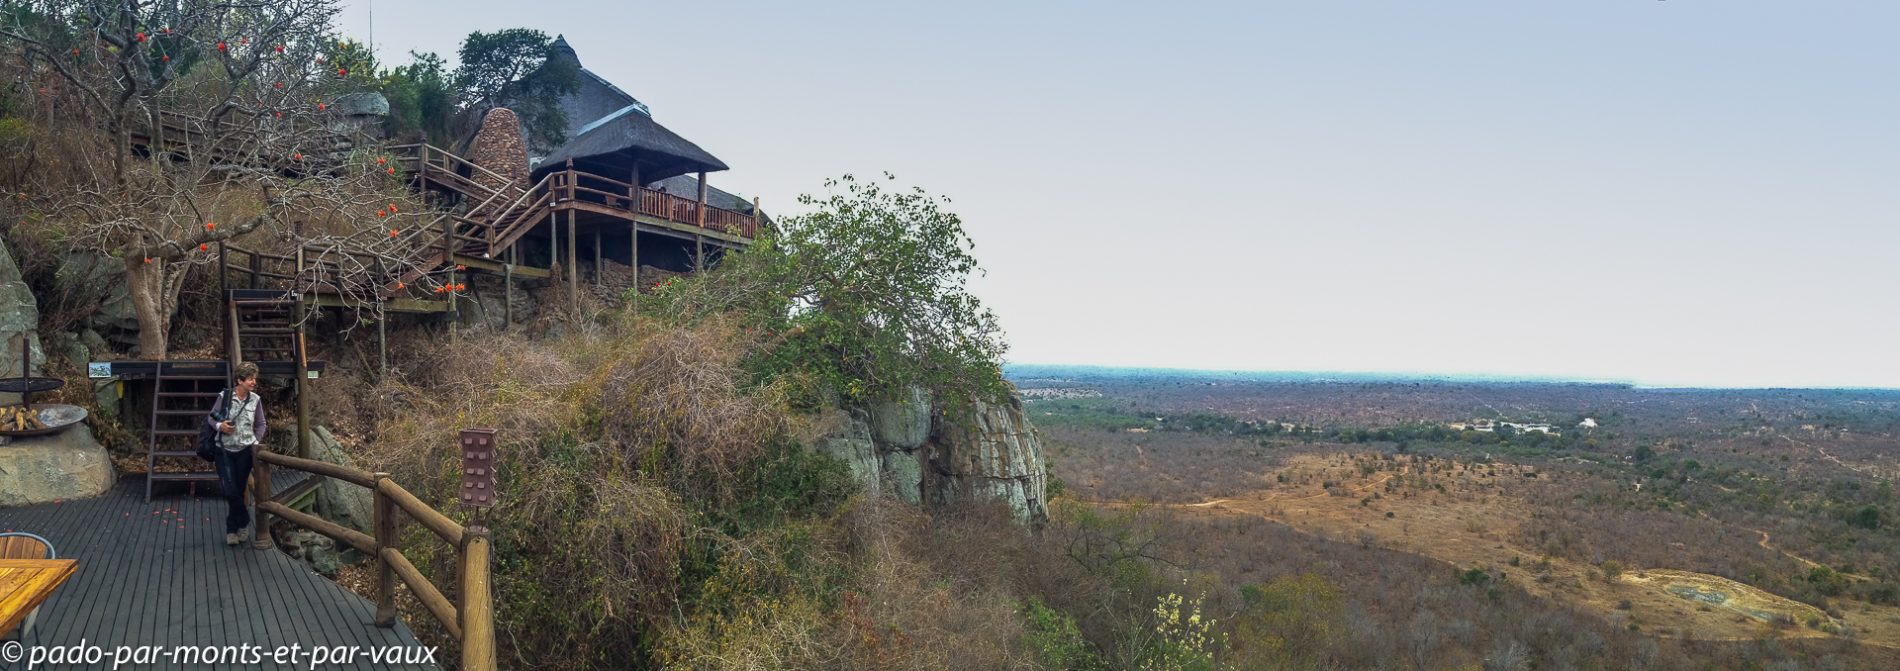 Ulusaba - Rock lodge